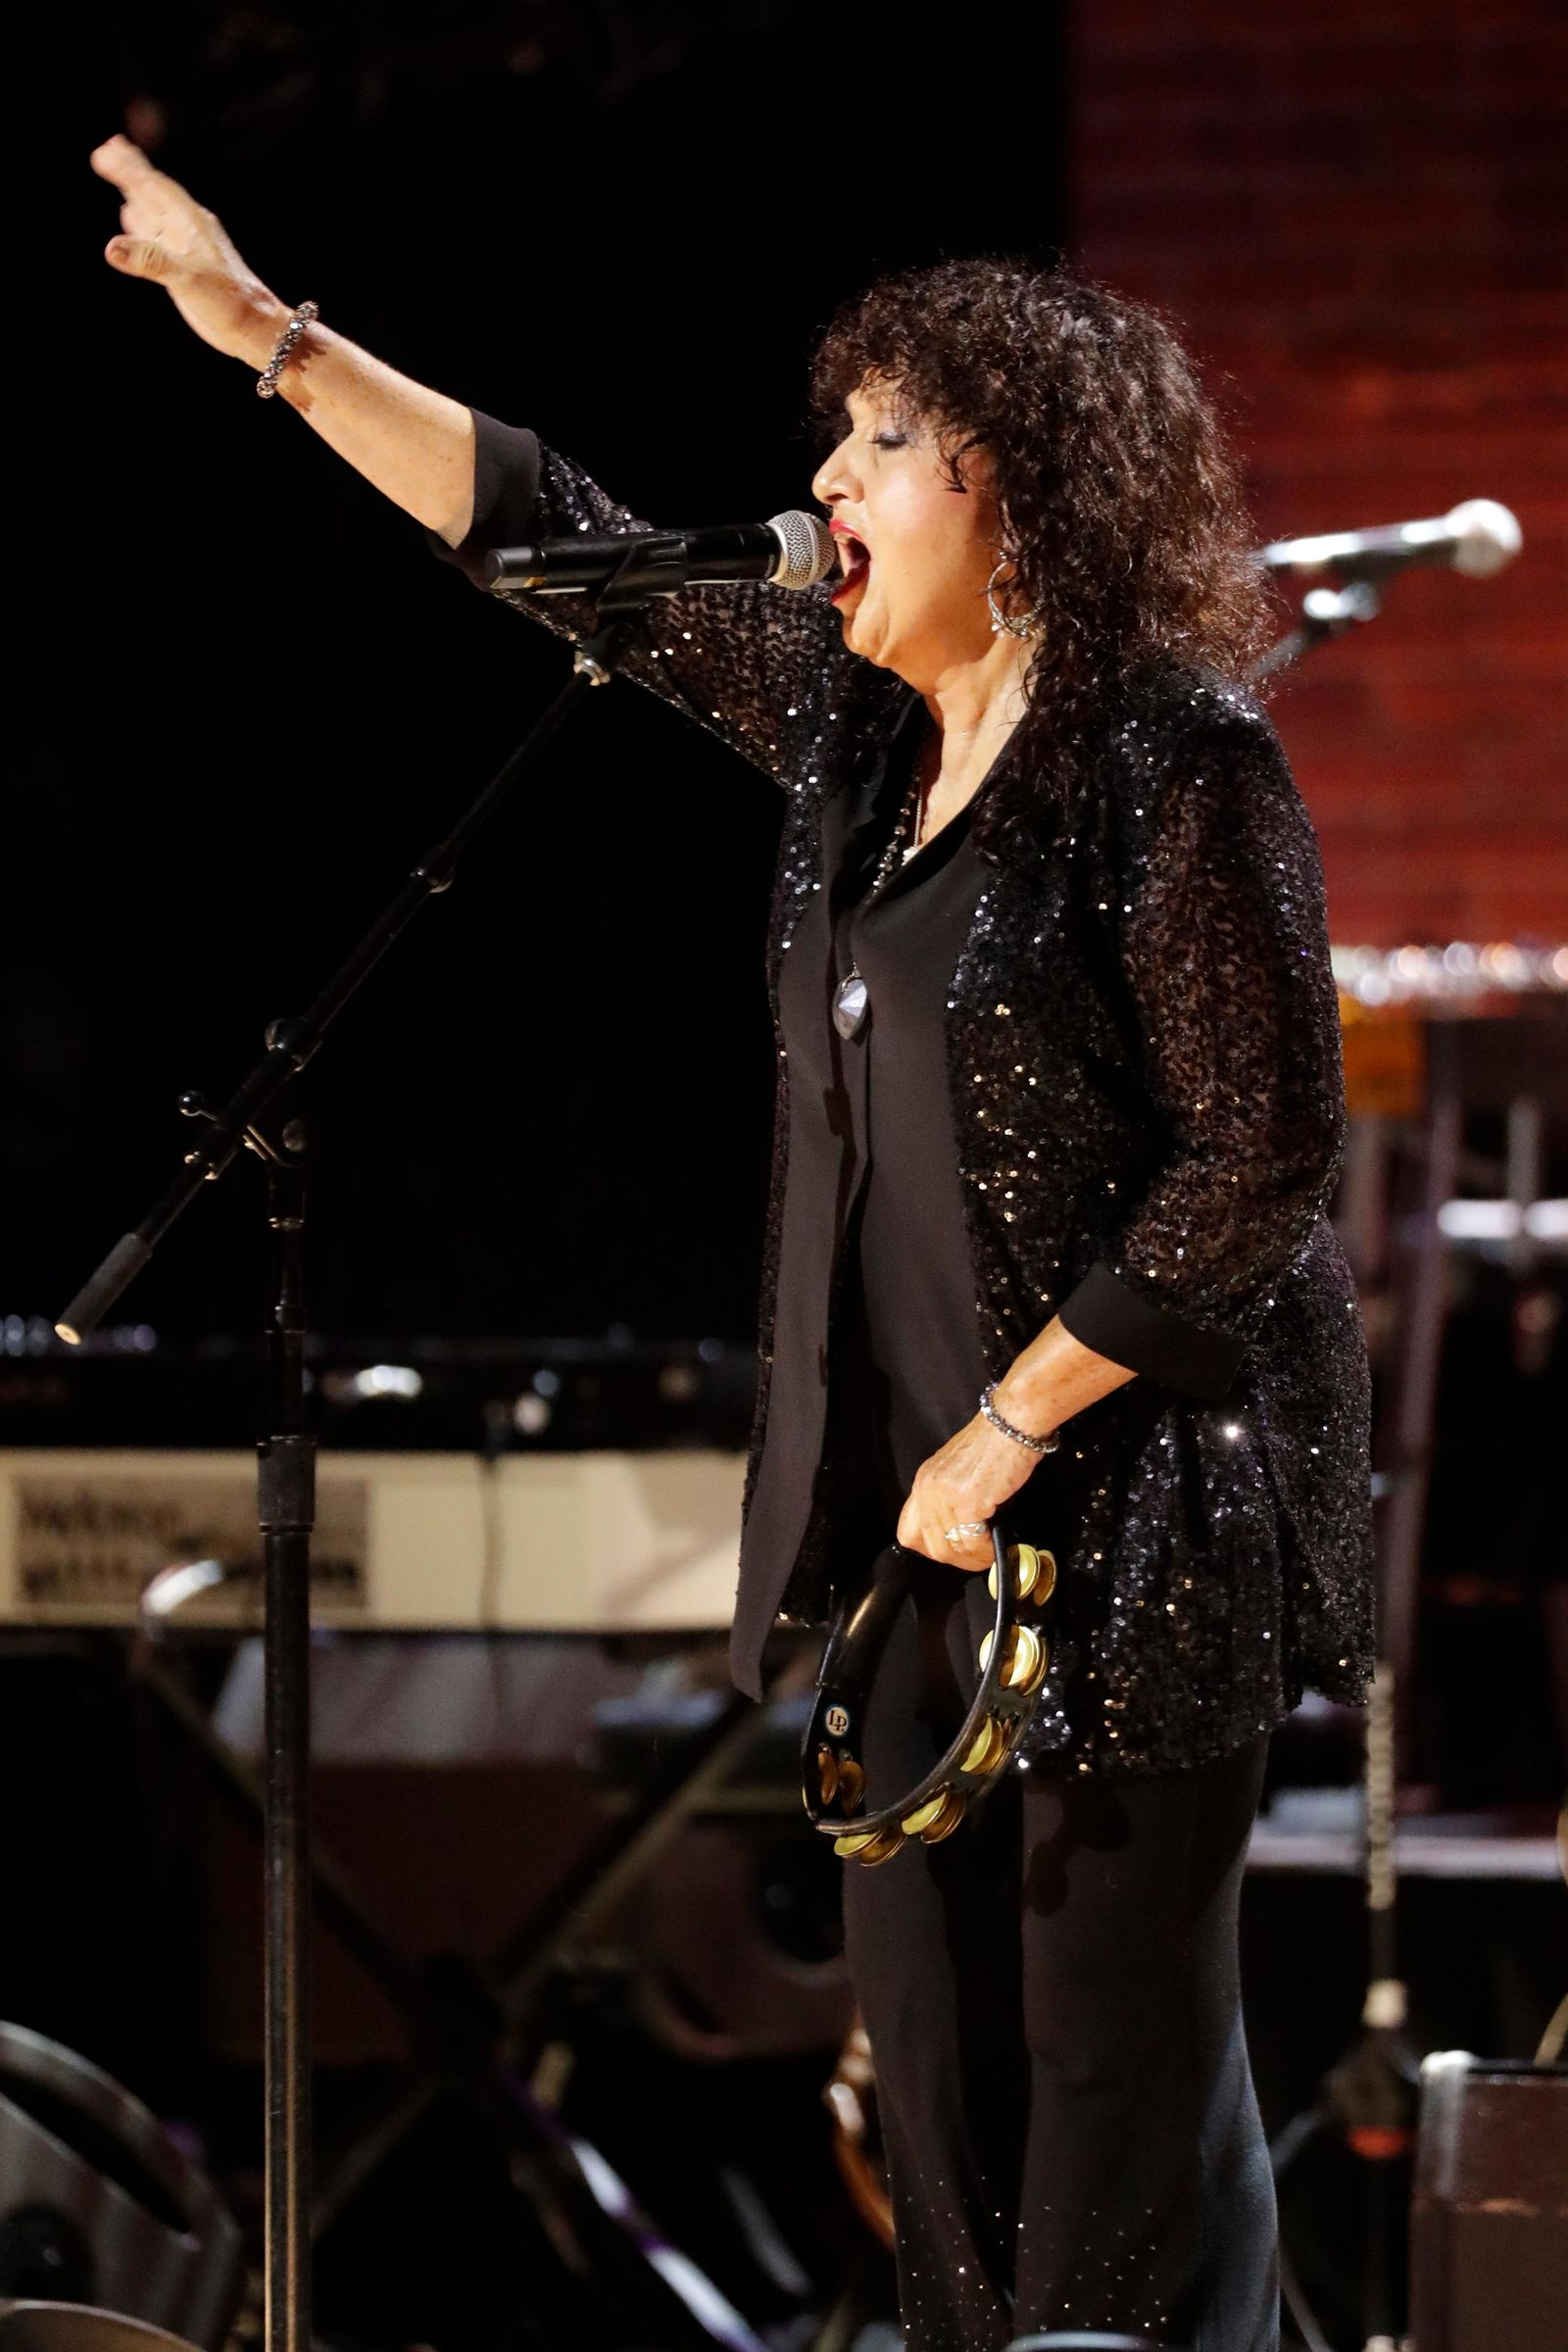 Maria Muldaur performs during the Americana Honors & Awards show Wednesday, Sept. 11, 2019, in Nashville, Tenn. (AP Photo/Wade Payne)